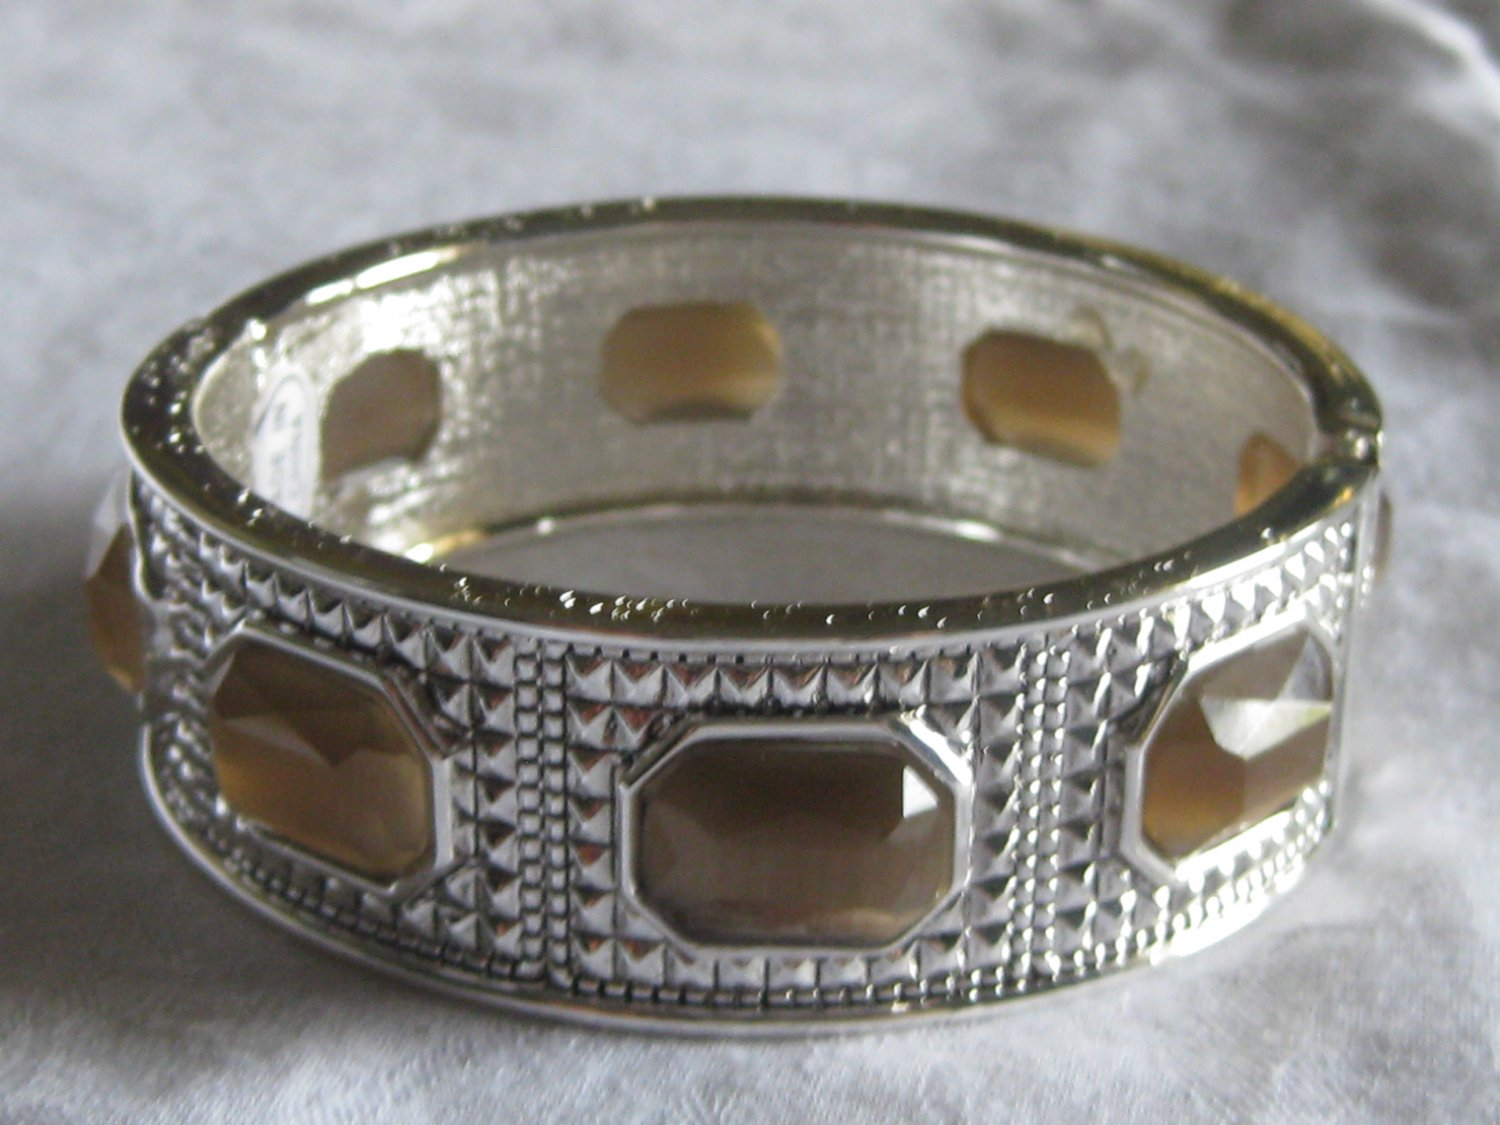 Silver with brown stones